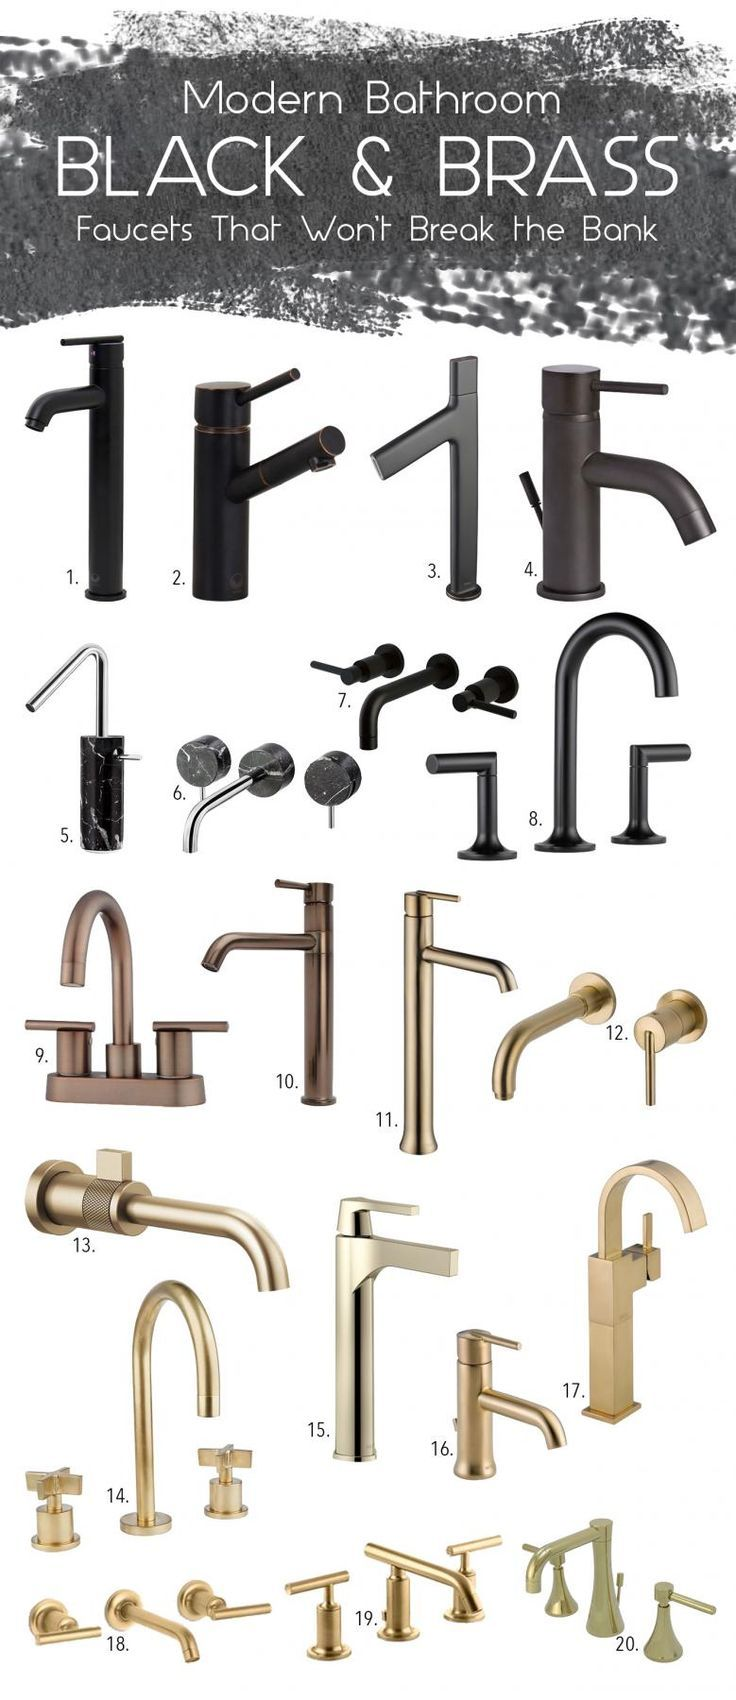 115 best kitchen faucets images on pinterest kitchen faucets black brass kitchen faucet mood board via simply grove